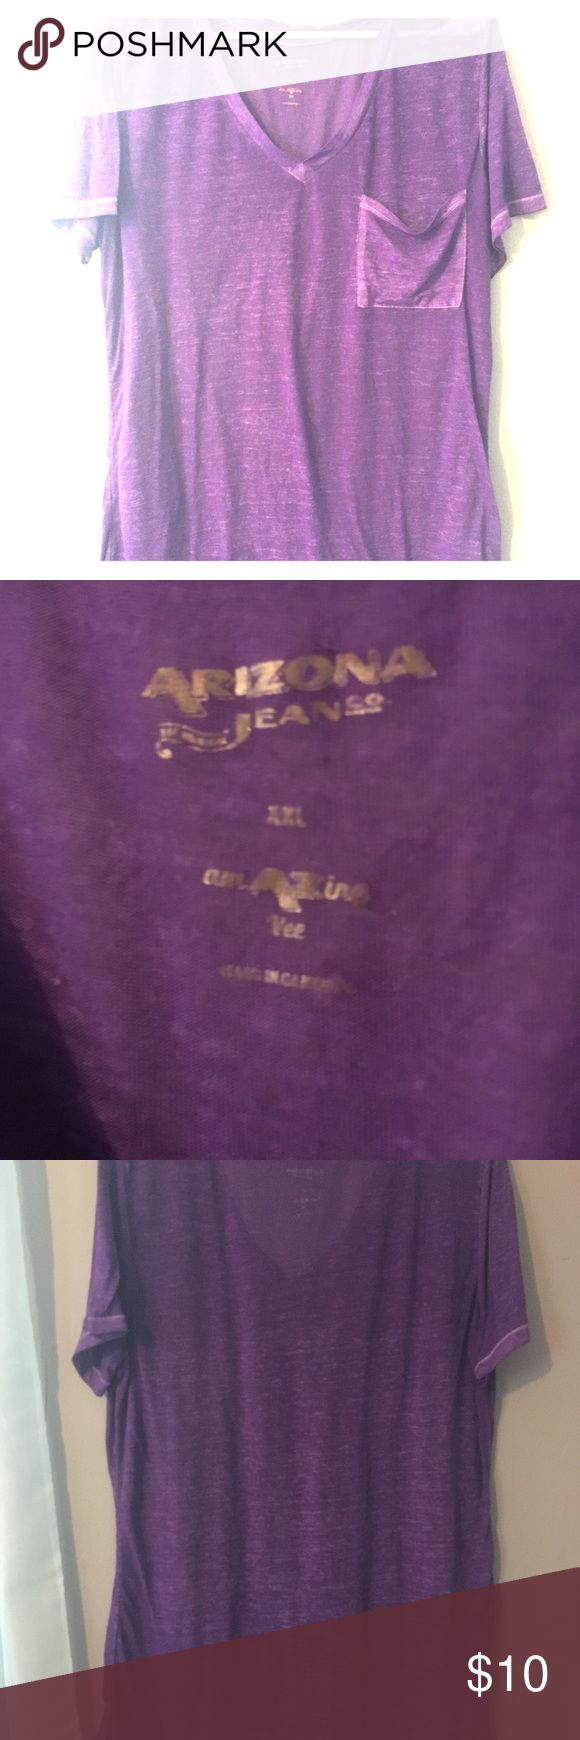 Arizona slouchy tee Arizona slouchy tee. Beautiful purple color. Thin, burnout style. Very very soft material. Size xxl juniors. NWOT! Arizona Jean Company Tops Tees - Short Sleeve